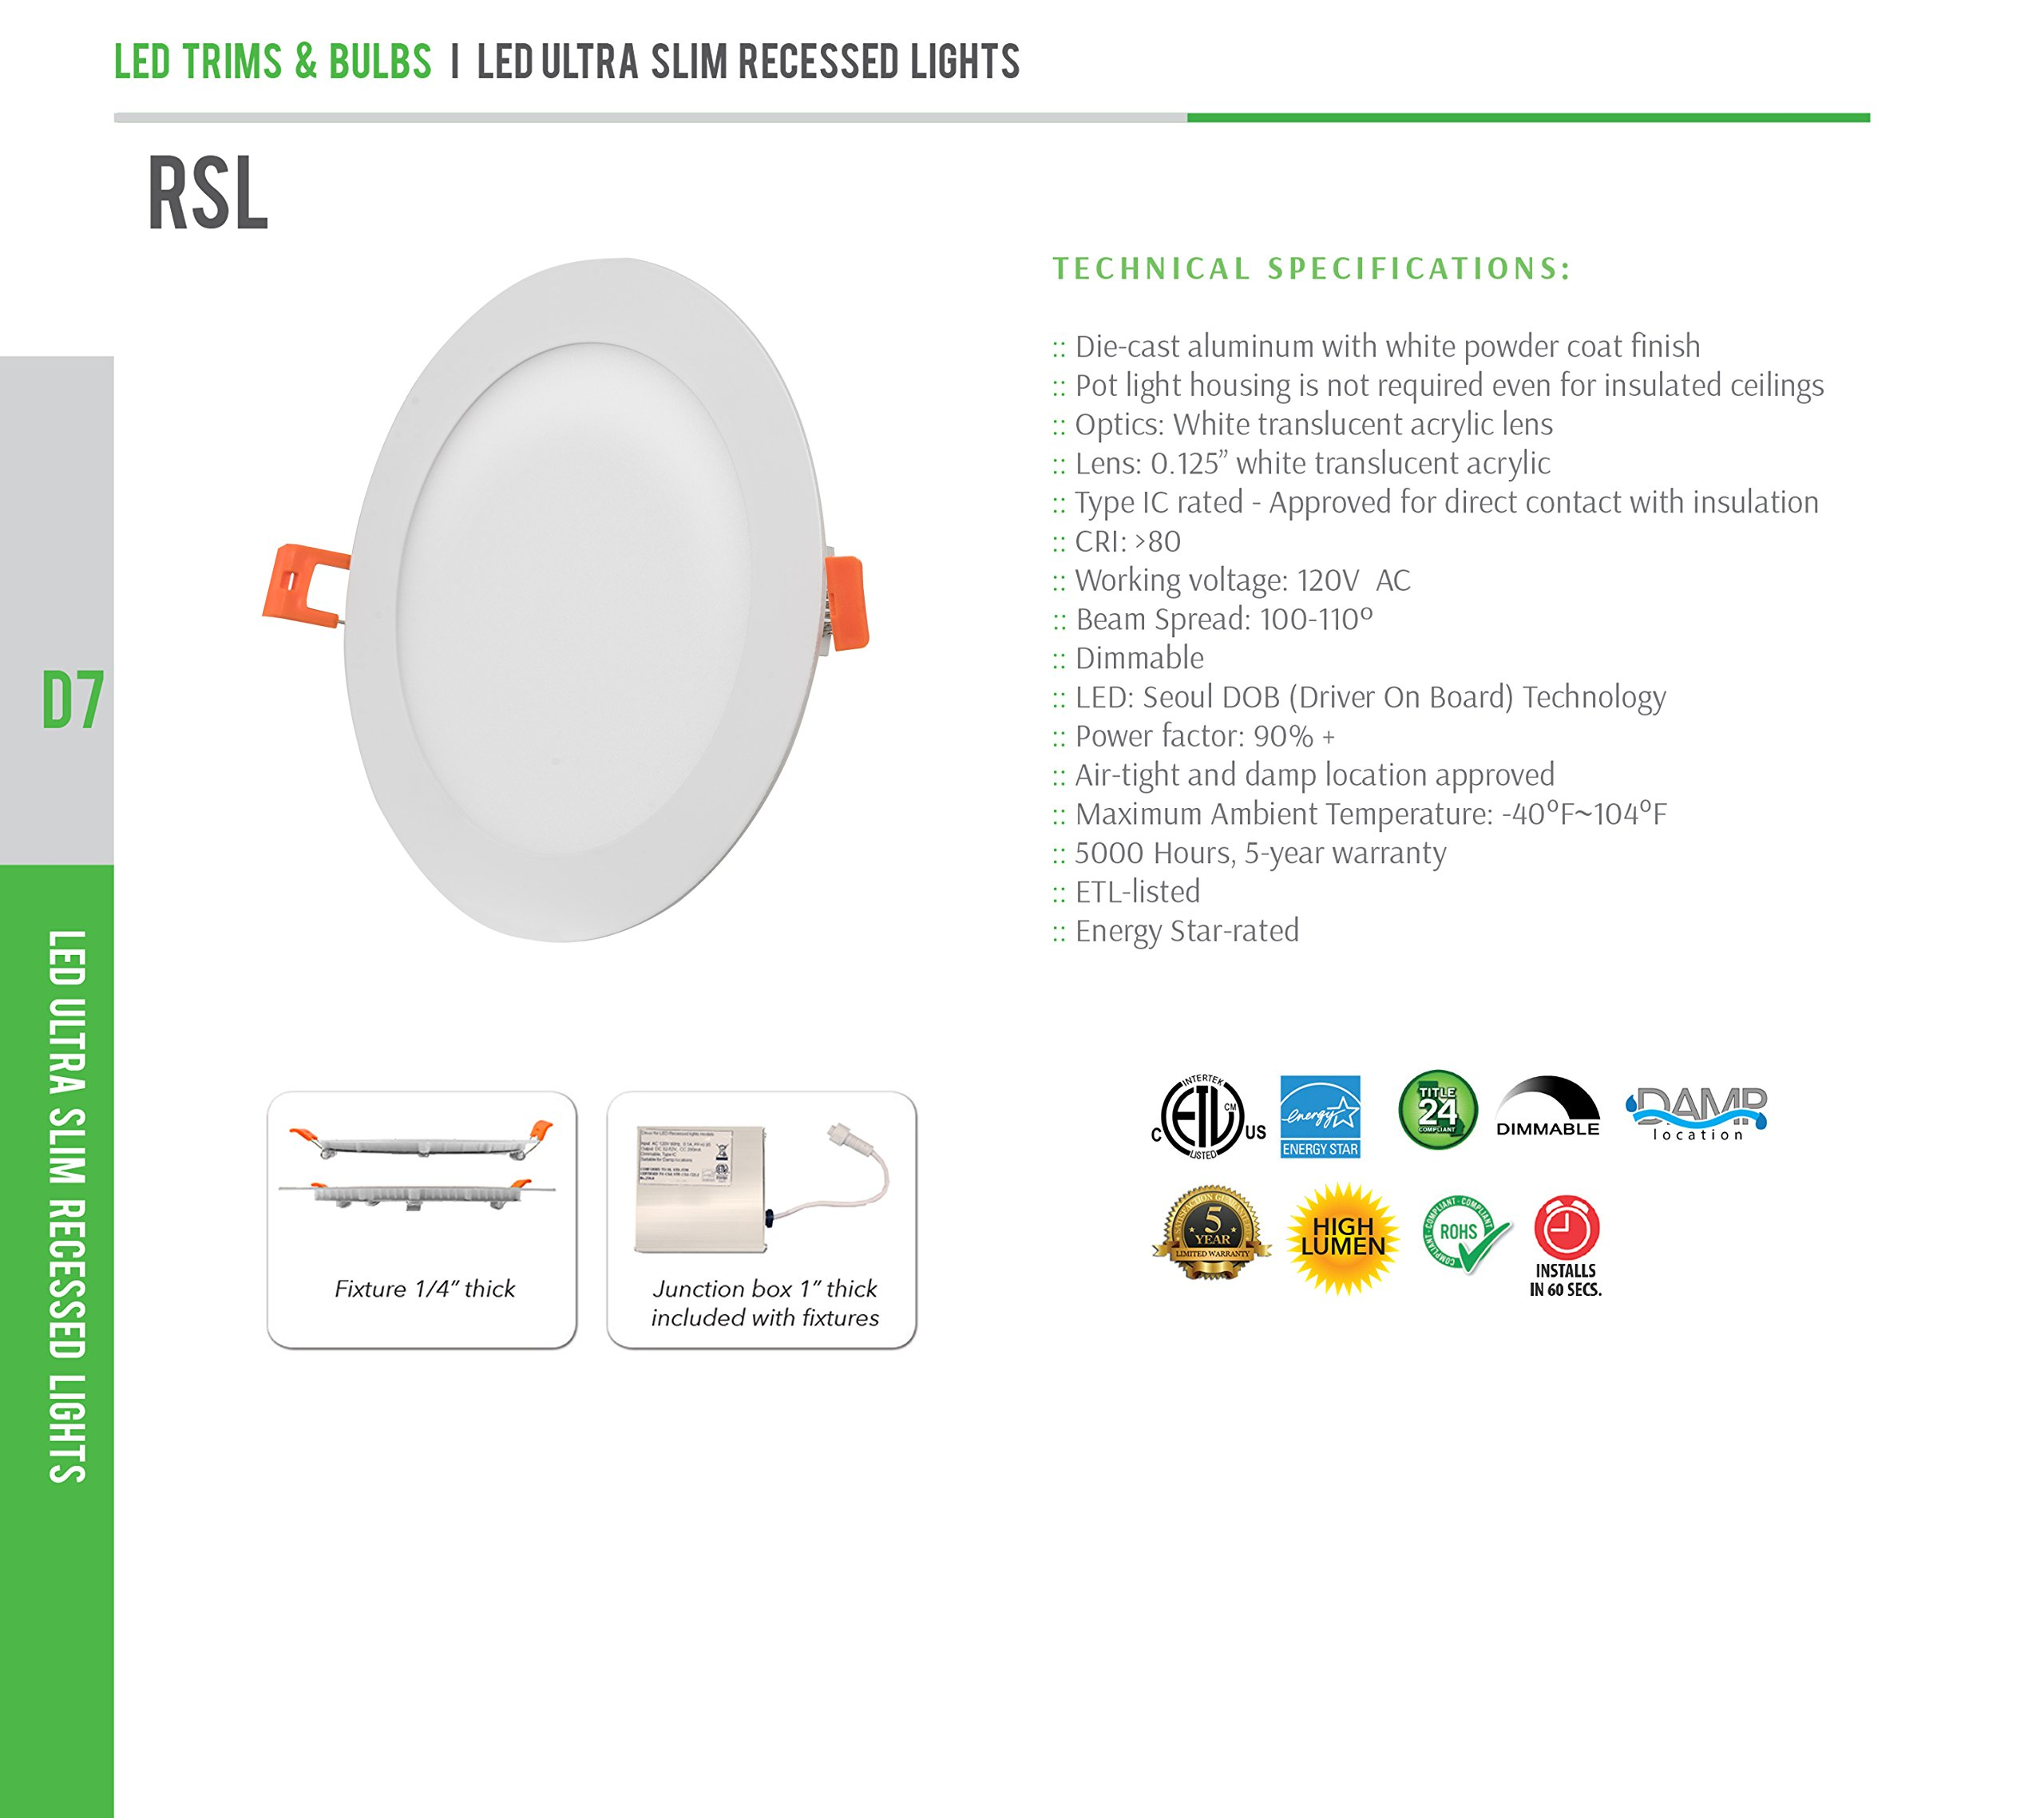 Westgate Lighting 15W 6'' Inch Ultra Thin Slim LED Recessed Light - Dimmable Retrofit Downlight Smooth Trim - Junction Box Included - No Housing Required - Ceiling Lights (8 Pack, 3000K Soft White) by Westgate (Image #7)